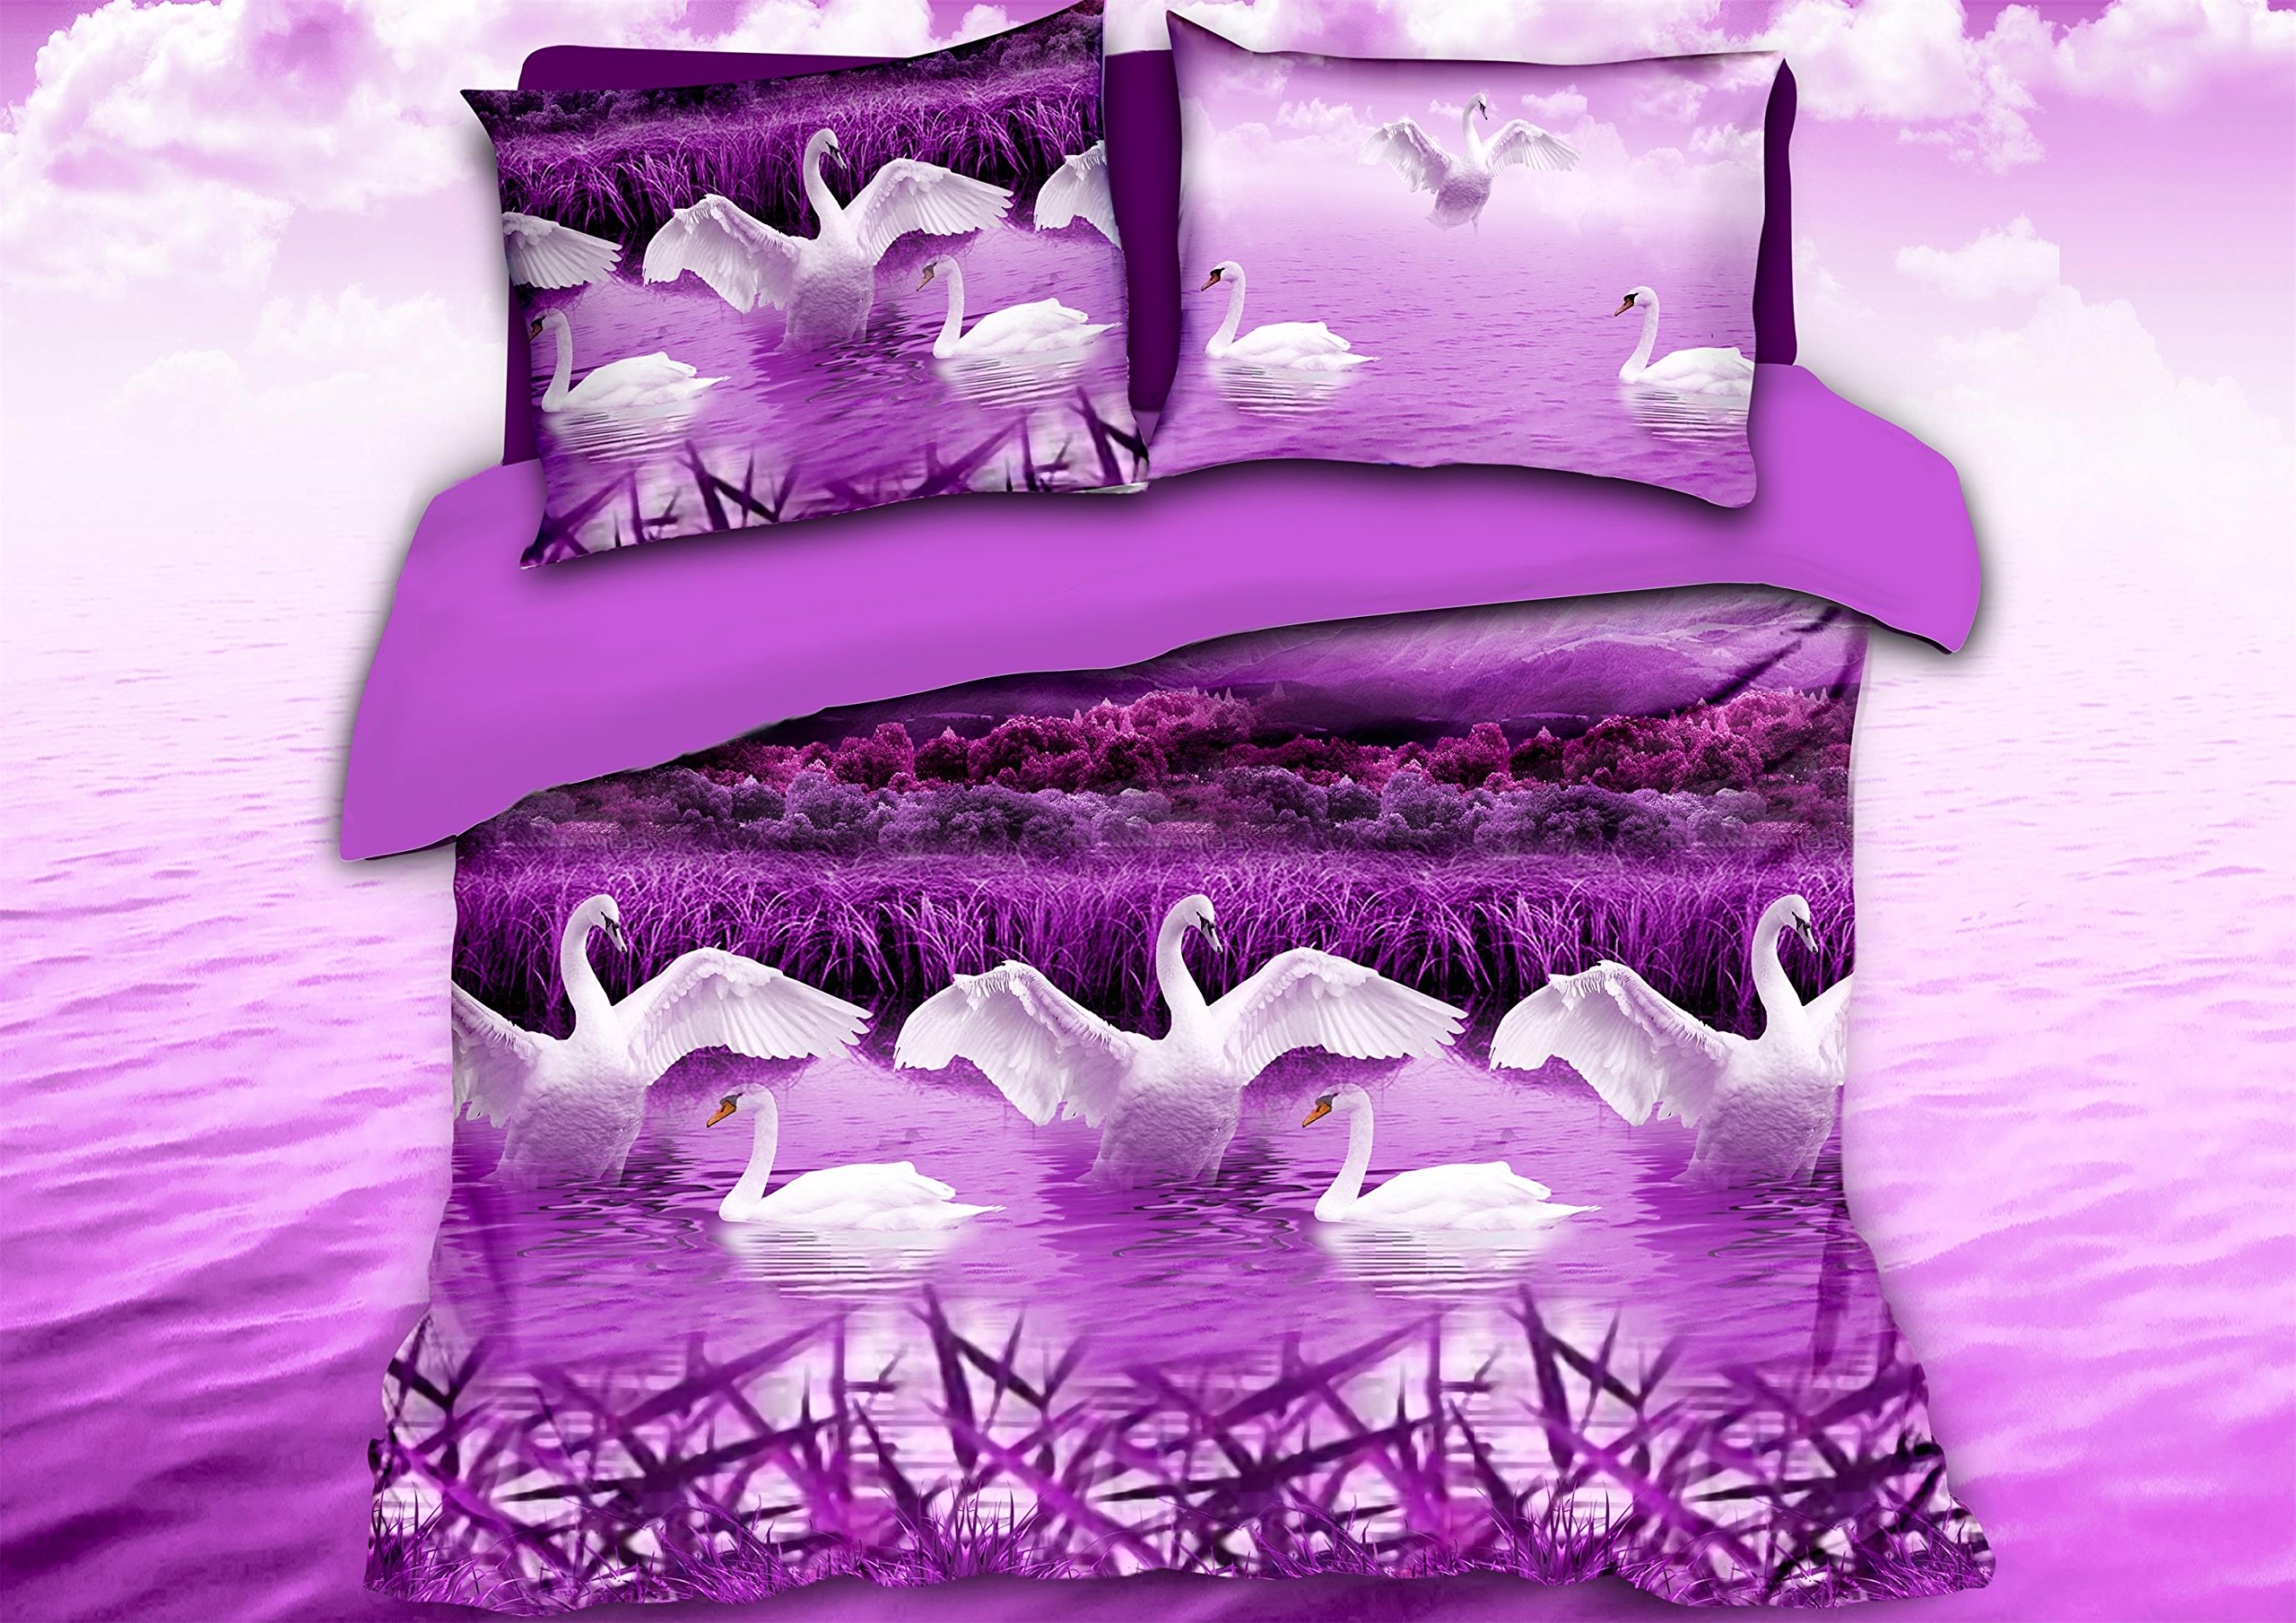 HIG Luxurious 3D Bed Sheet Set Wild Life Animals,Flowers and Scenery Print in Queen King Size (King, SWANPURPLE-Y38)